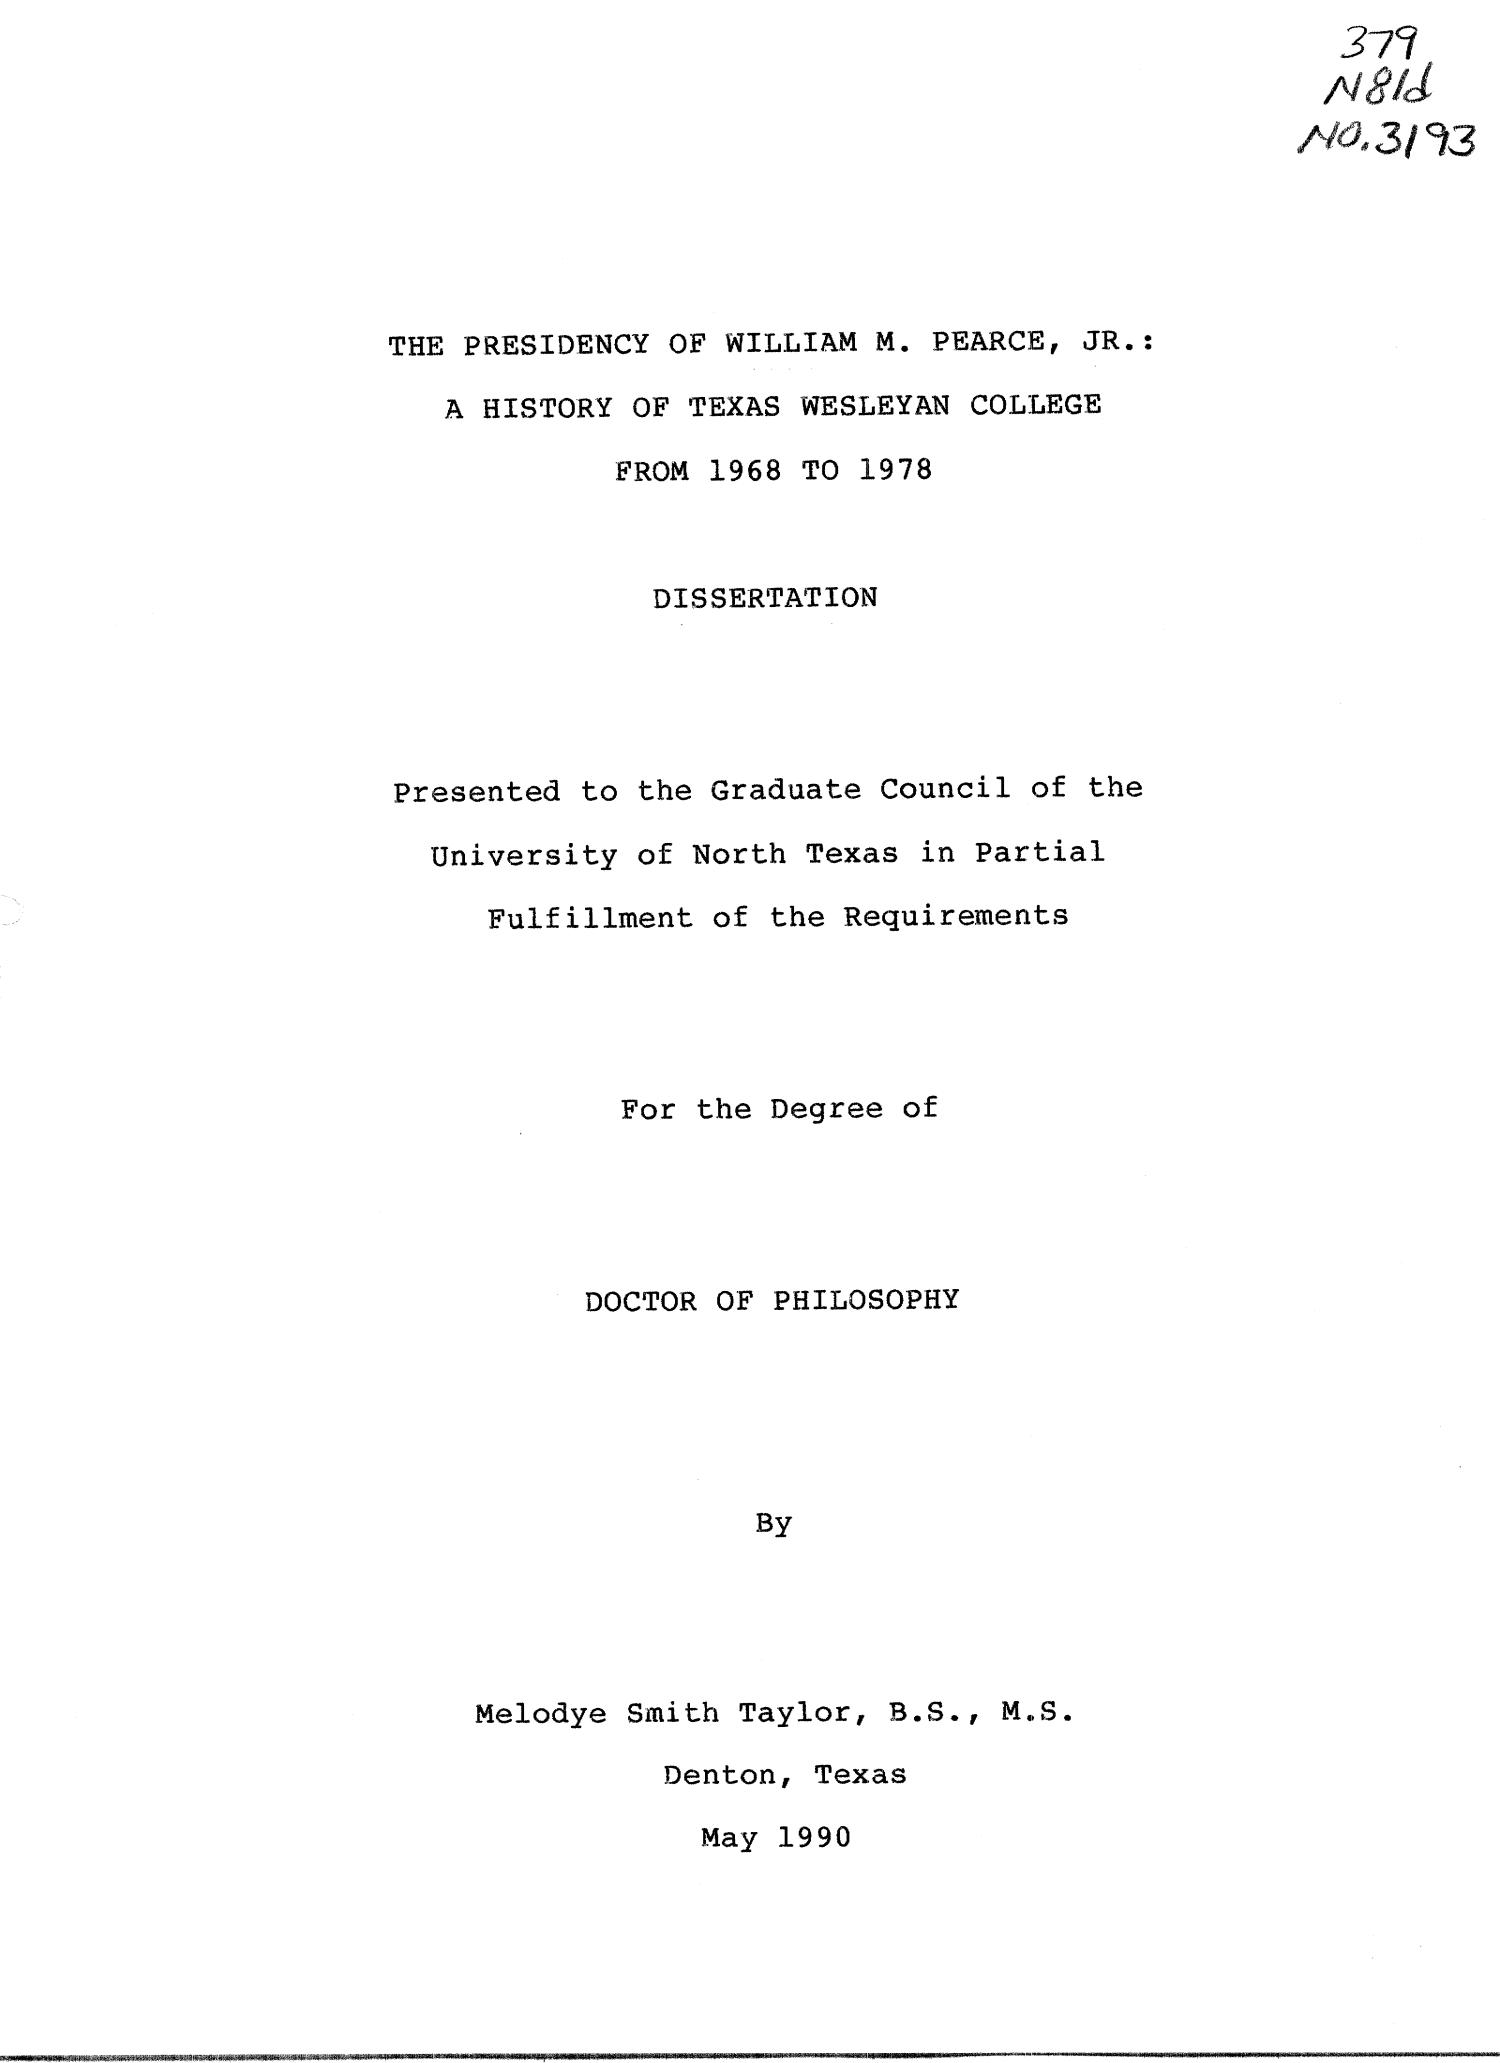 The Presidency of William M. Pearce, Jr.: A History of Texas Wesleyan College From 1968 to 1978                                                                                                      Title Page